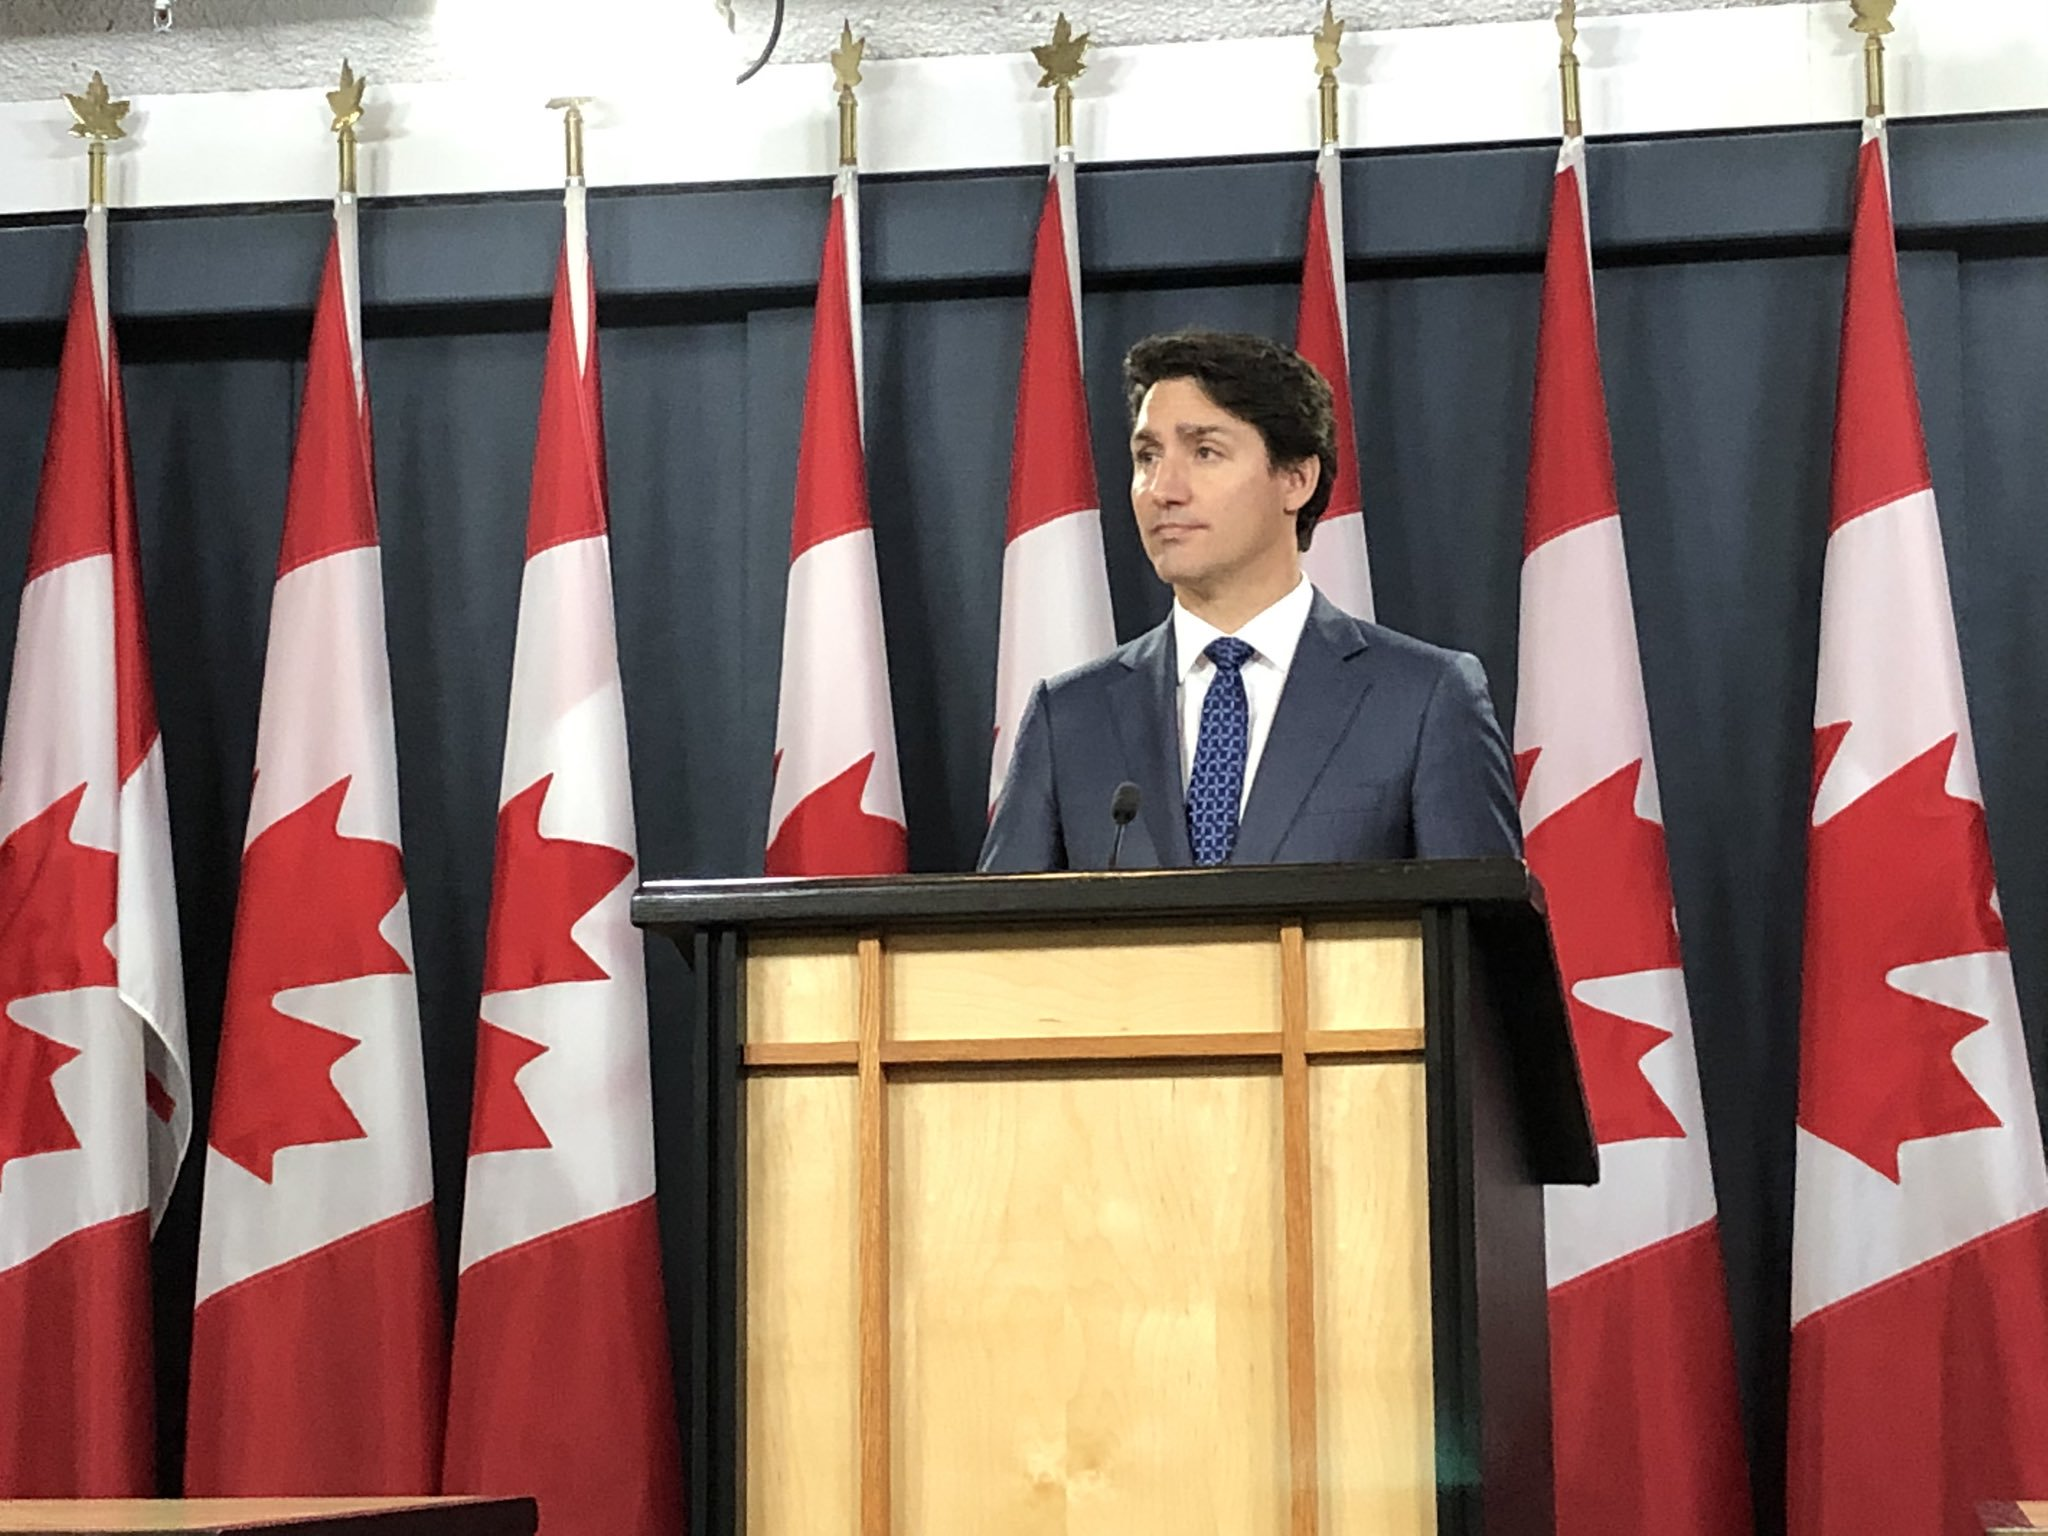 HOT AIR: Trudeau's climate hypocrisy will stall the green movement